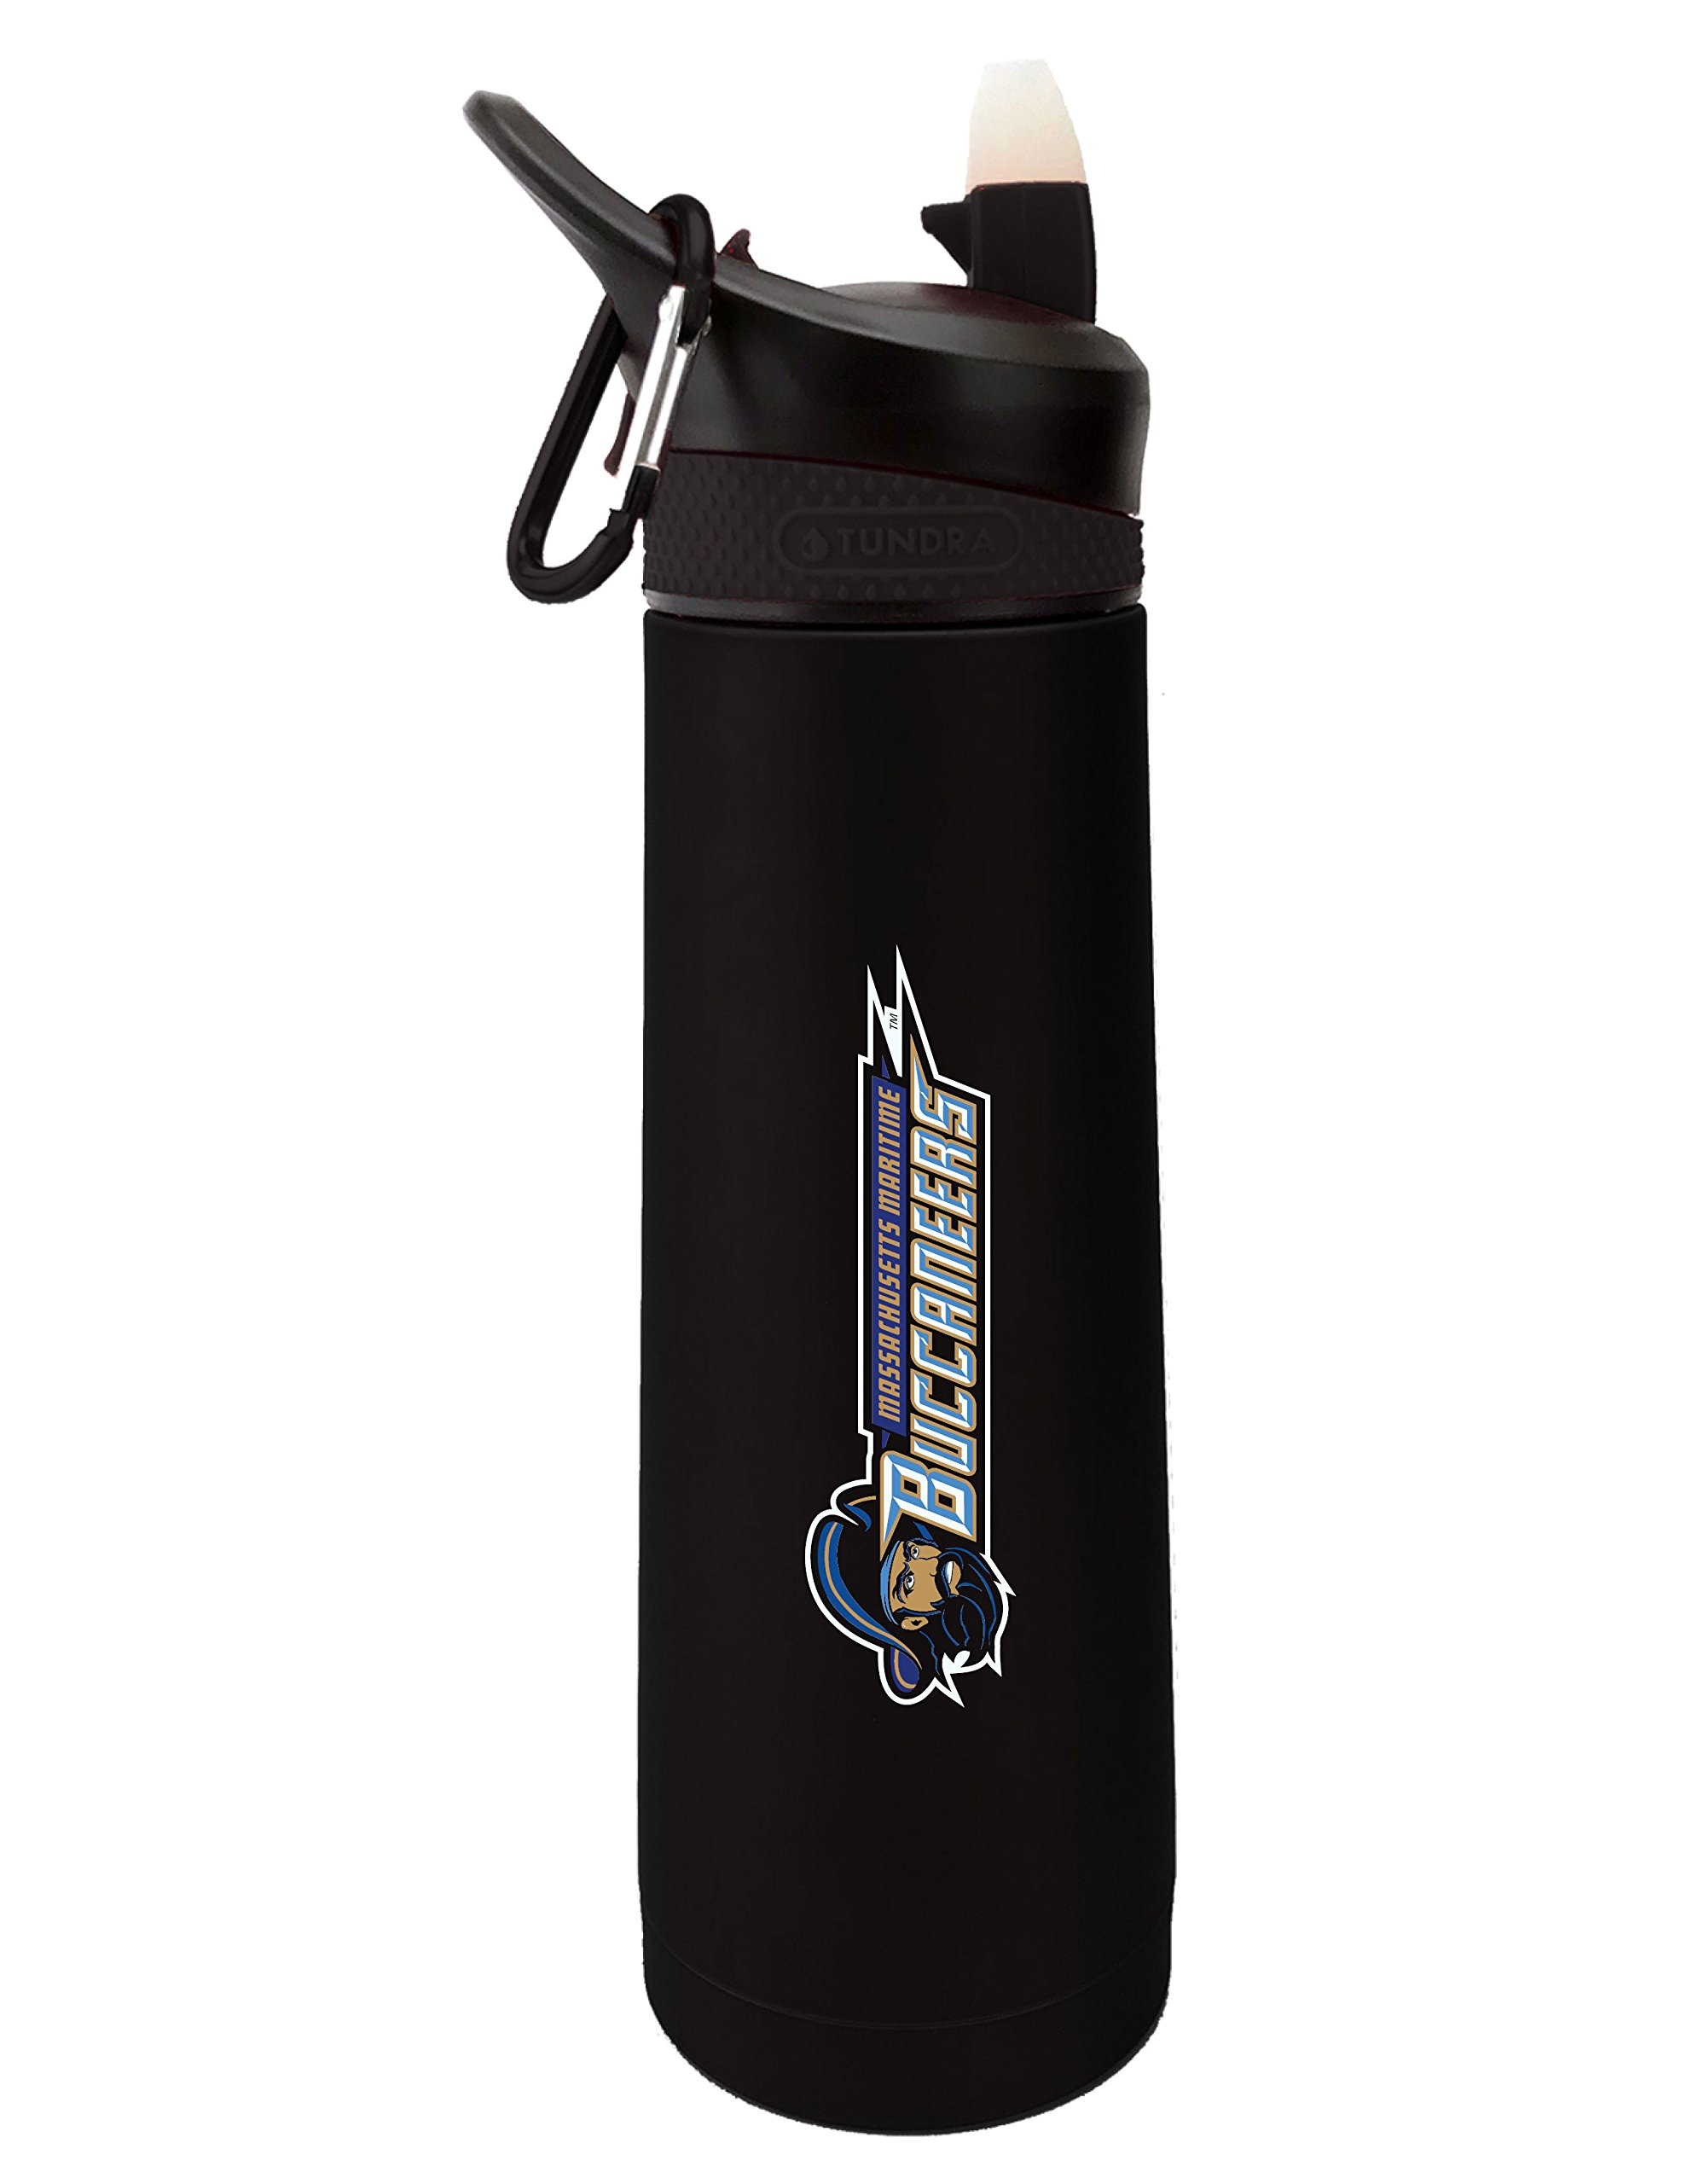 Fanatic Group Massachusetts Maritime Academy Dual Walled Stainless Steel Sports Bottle, Design 1 - Black